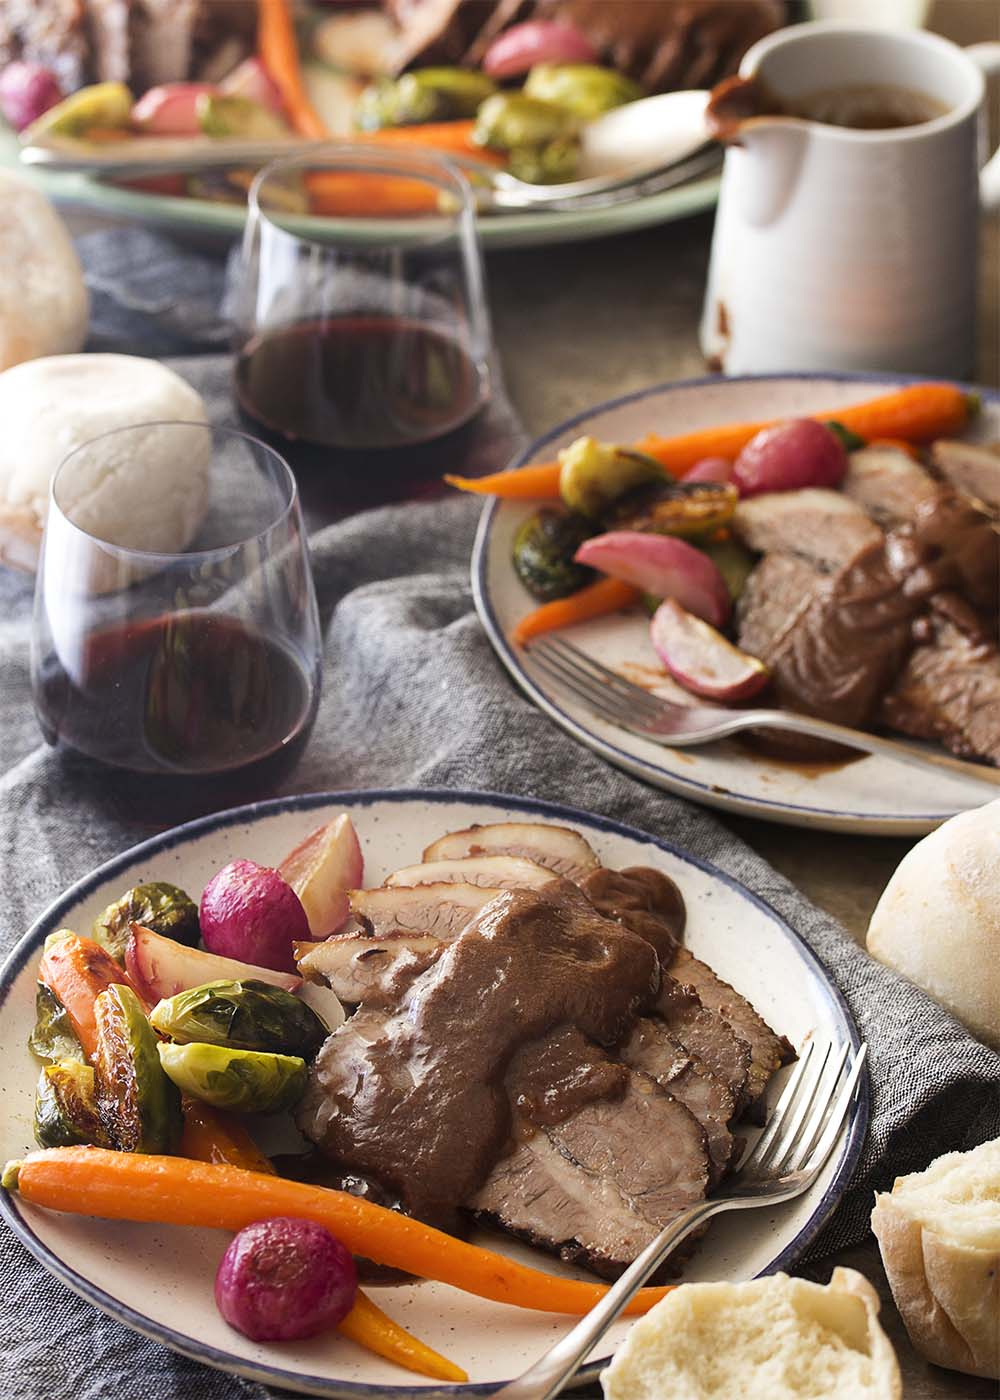 Table view of beef brisket on plates with vegetables alongside and gravy over the top.